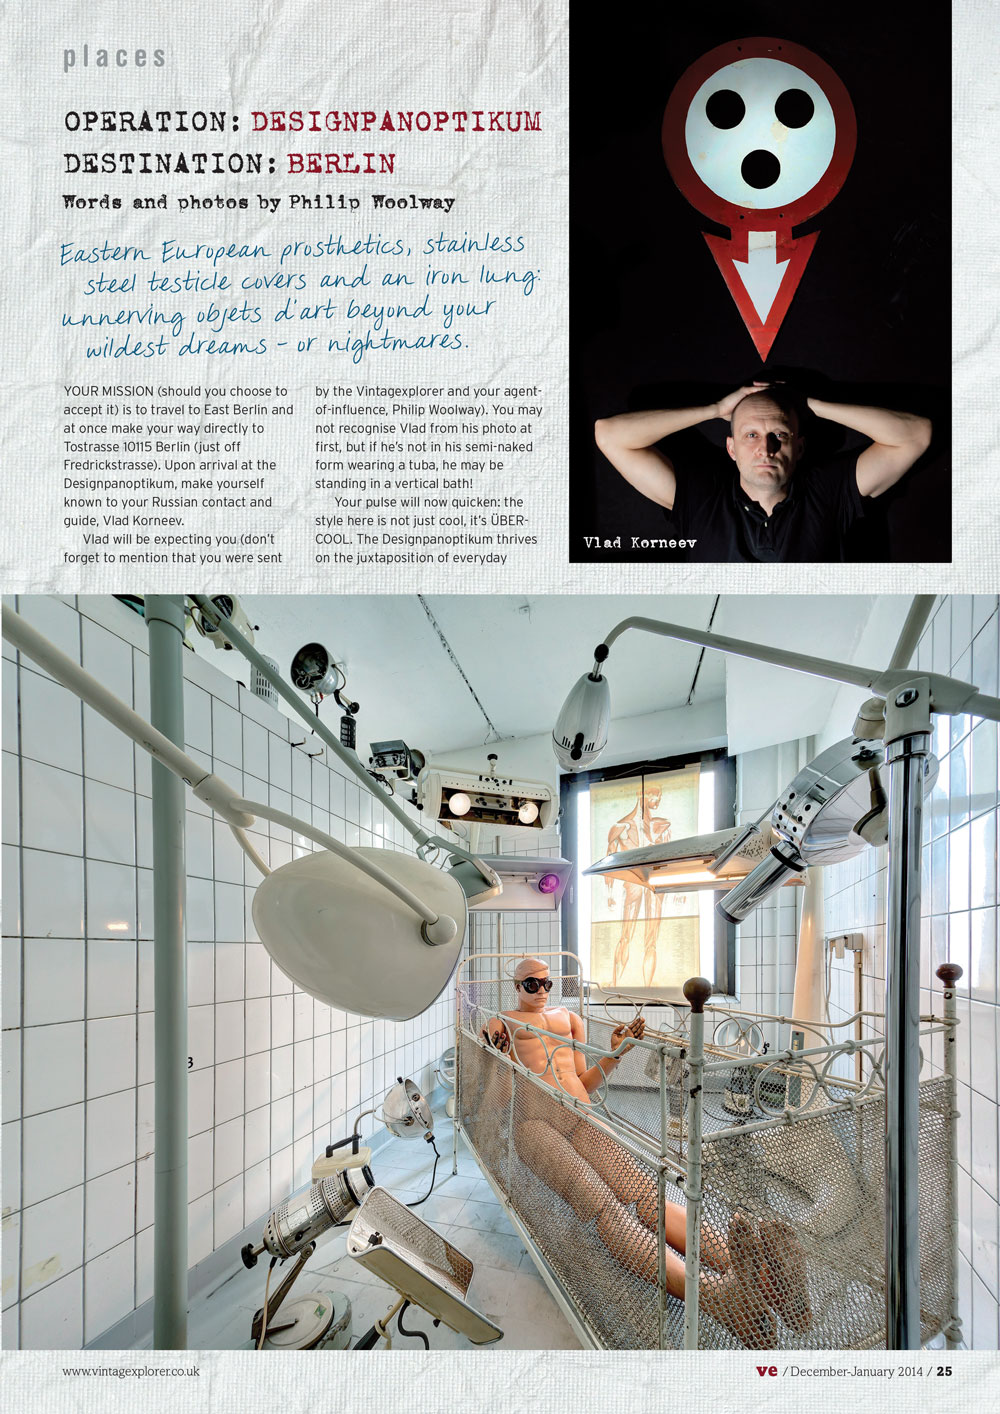 ISSUE 13 DEC/JAN 2014 - THE AMAZING DESIGNPANOPTIKUM,BERLIN Eastern European prosthetics, stainless steel testicle covers and an iron lung: unnerving objects d'art beyond your wildest dreams – or nightmares